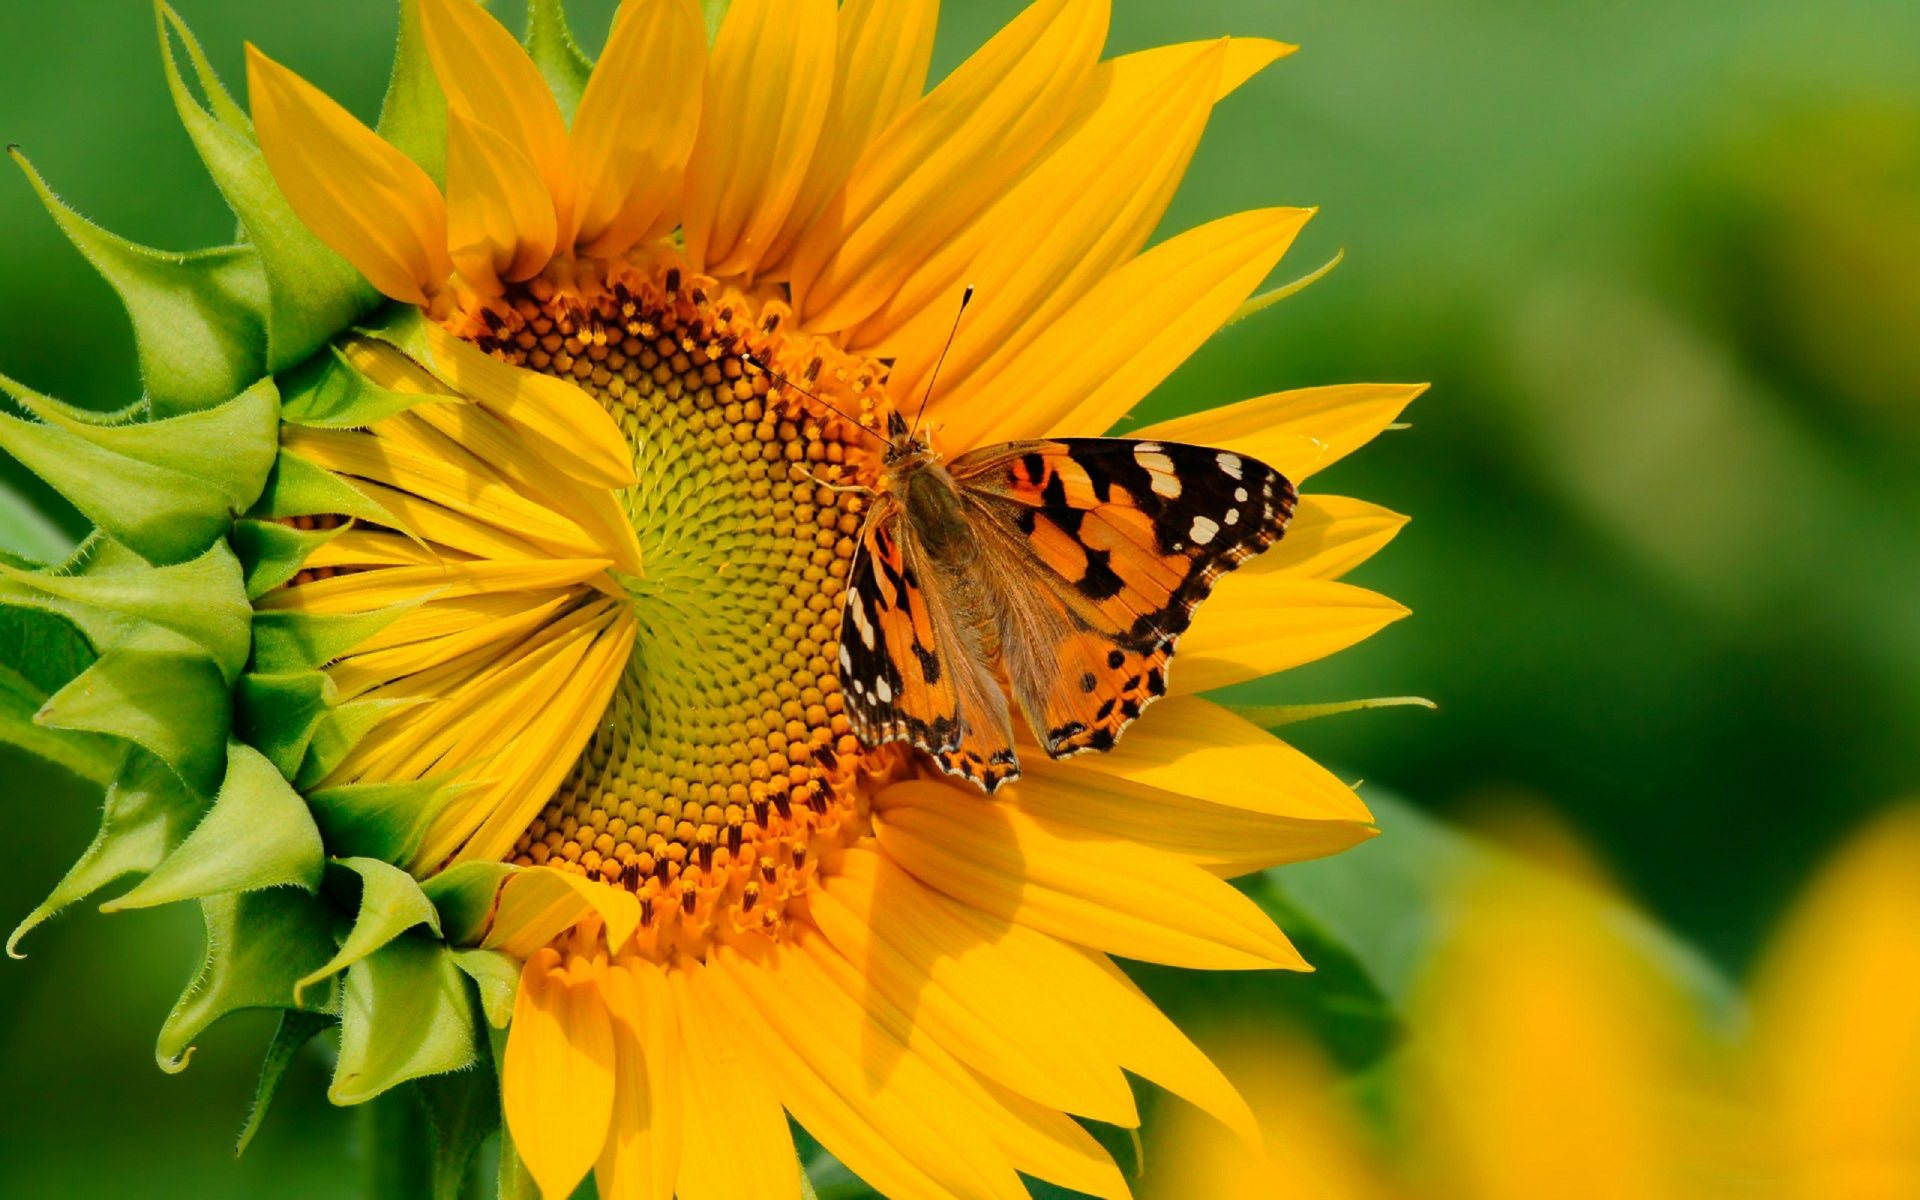 butterfly on sunflower wallpaper background